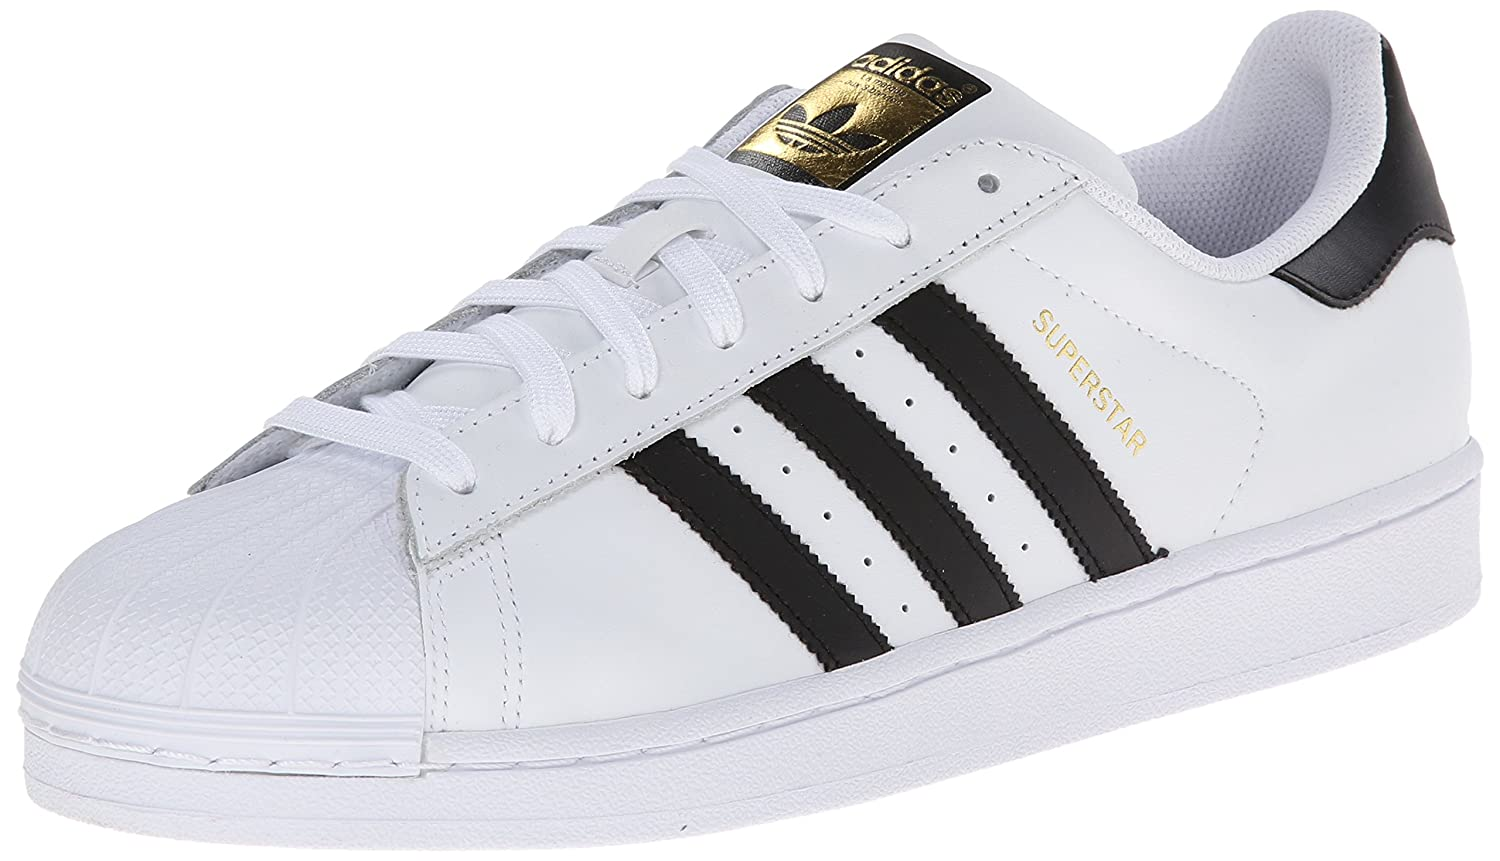 Adidas Superstar Baskets, Mixte Adulte